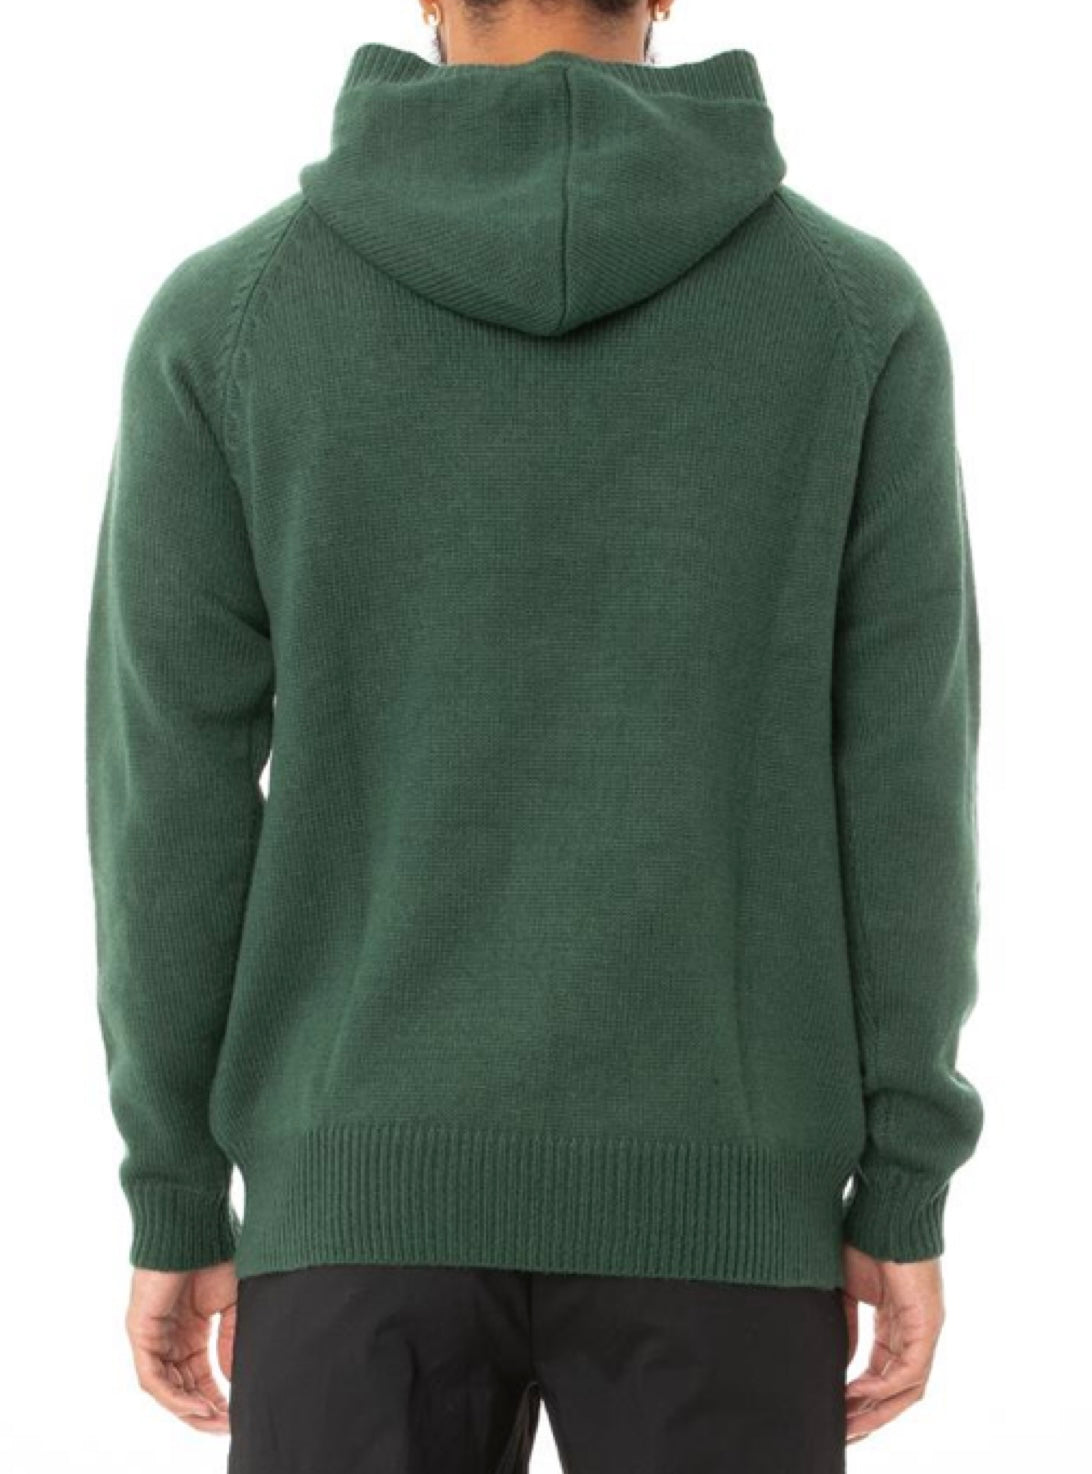 Kappa Knit Hoodie - Authentic Kasmart Man - Green - 381367W